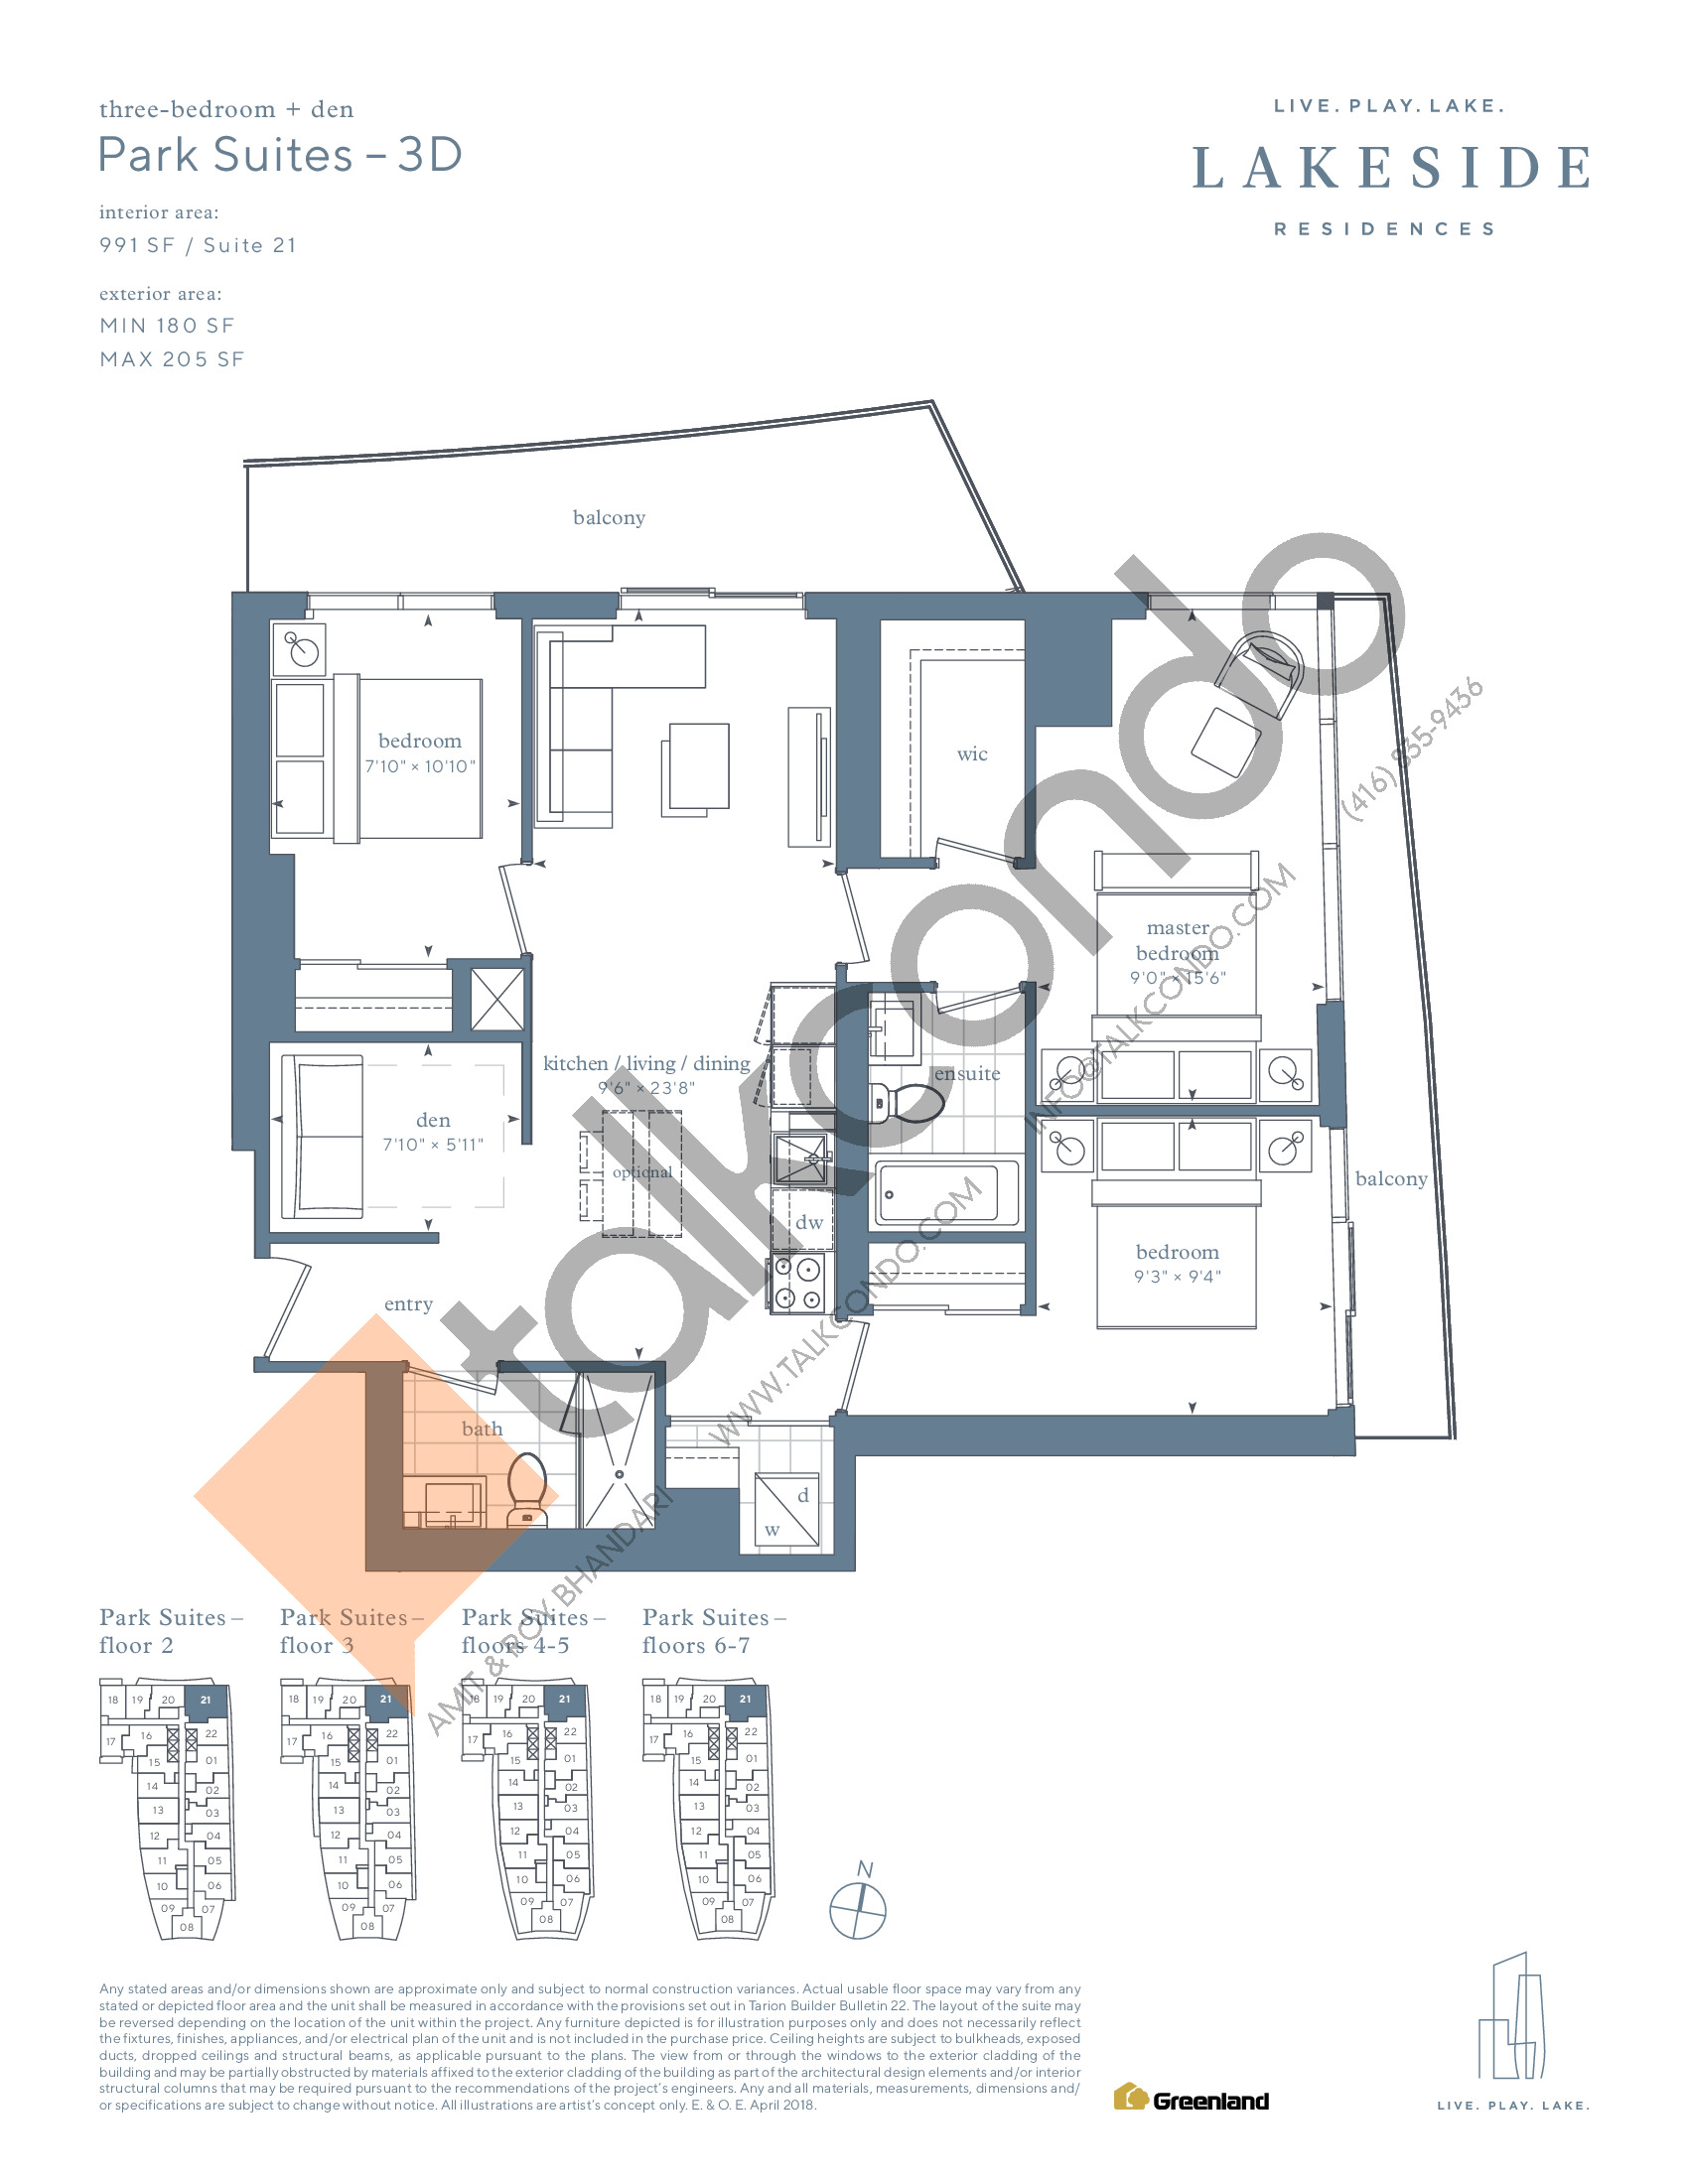 Park Suites - 3D Floor Plan at Lakeside Residences - 991 sq.ft